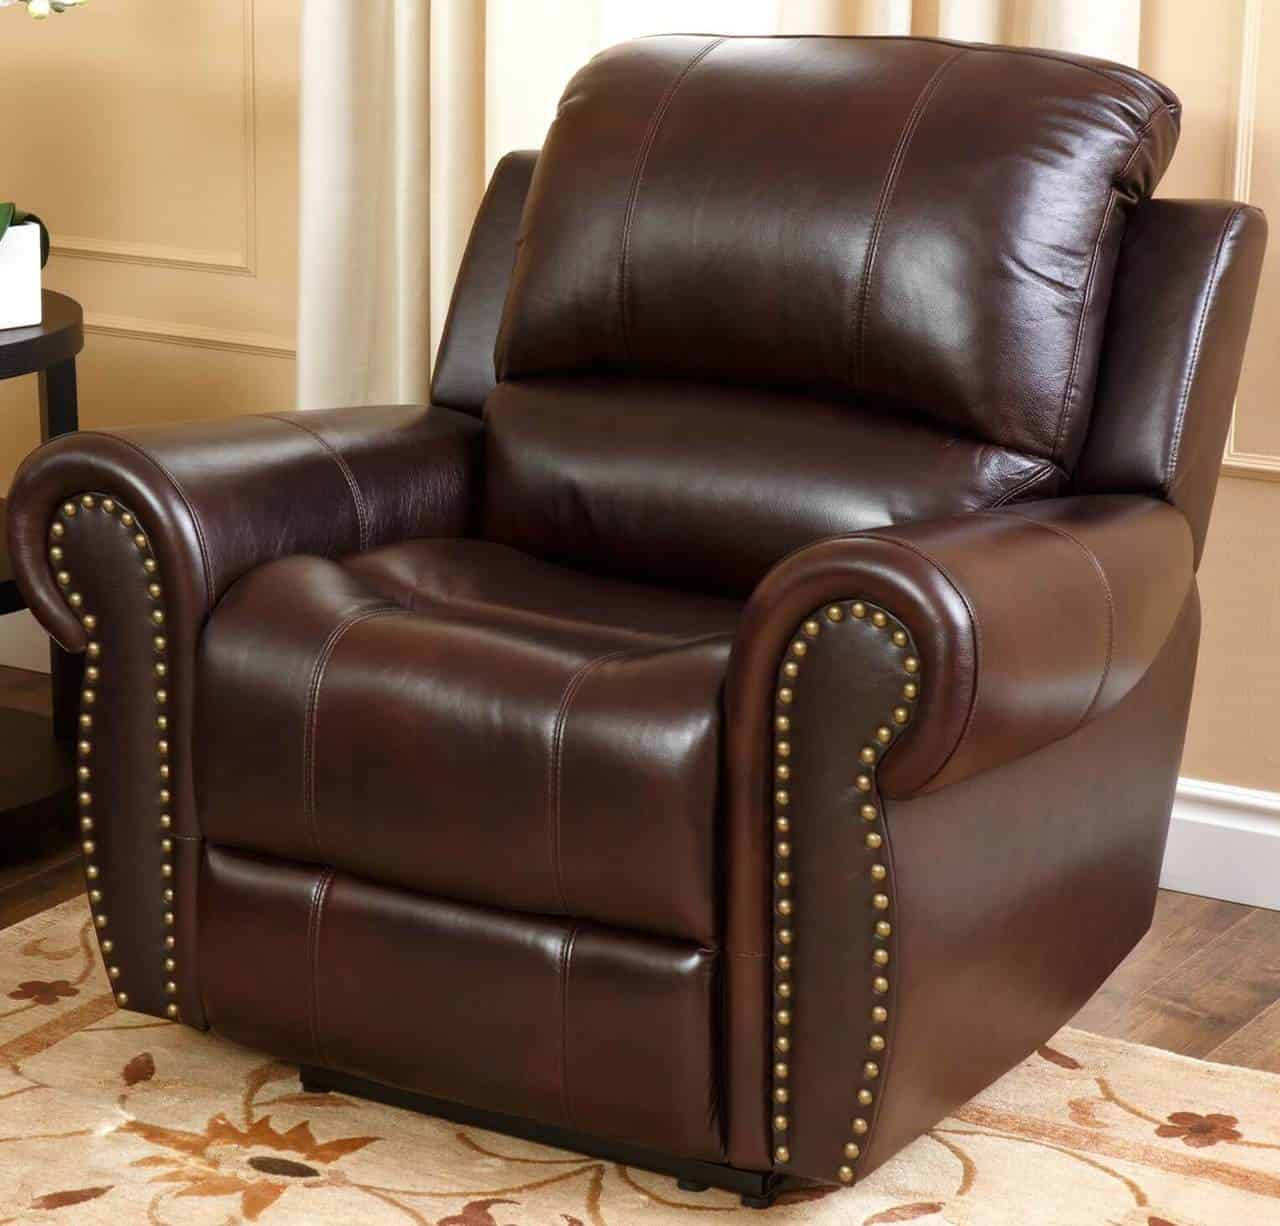 Captivating Abbyson Living Recliner Reviews